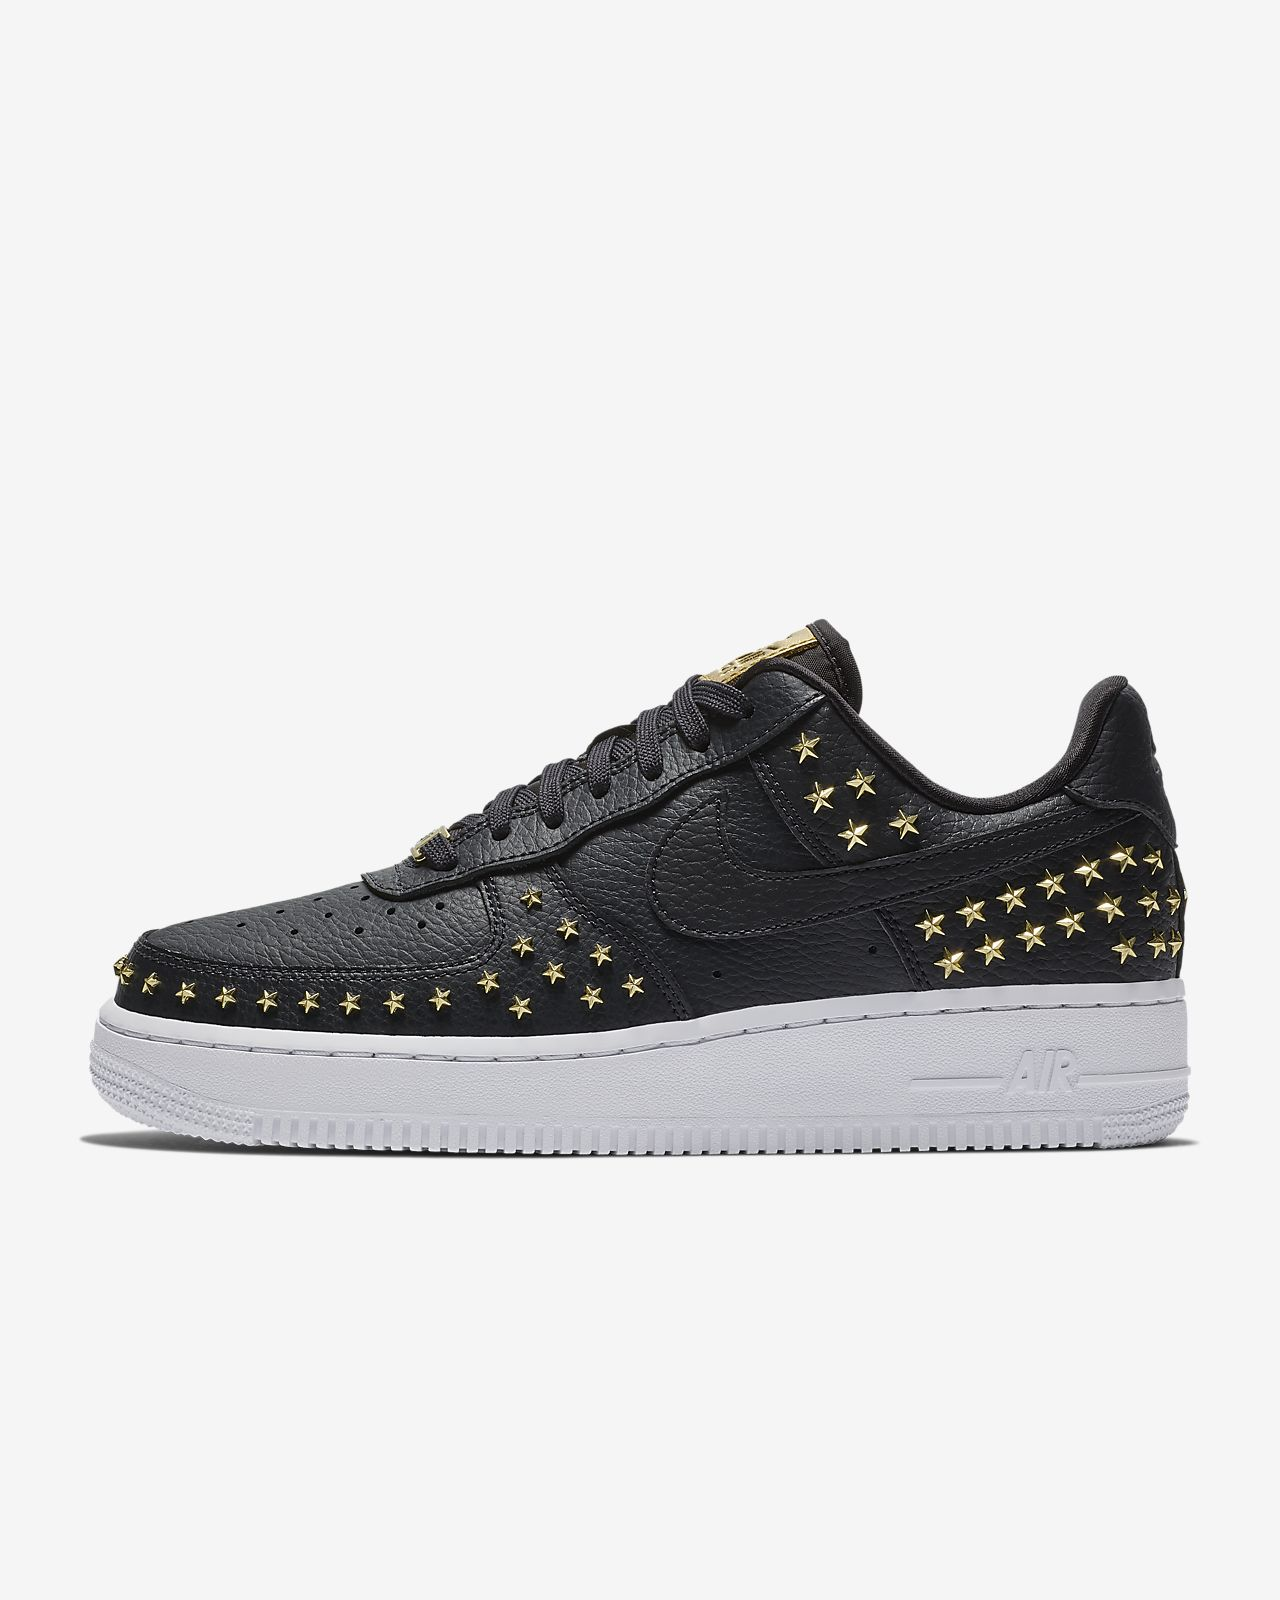 1 Xx Ca Nike '07 Force Femme Air Pour Chaussure WnpwFW